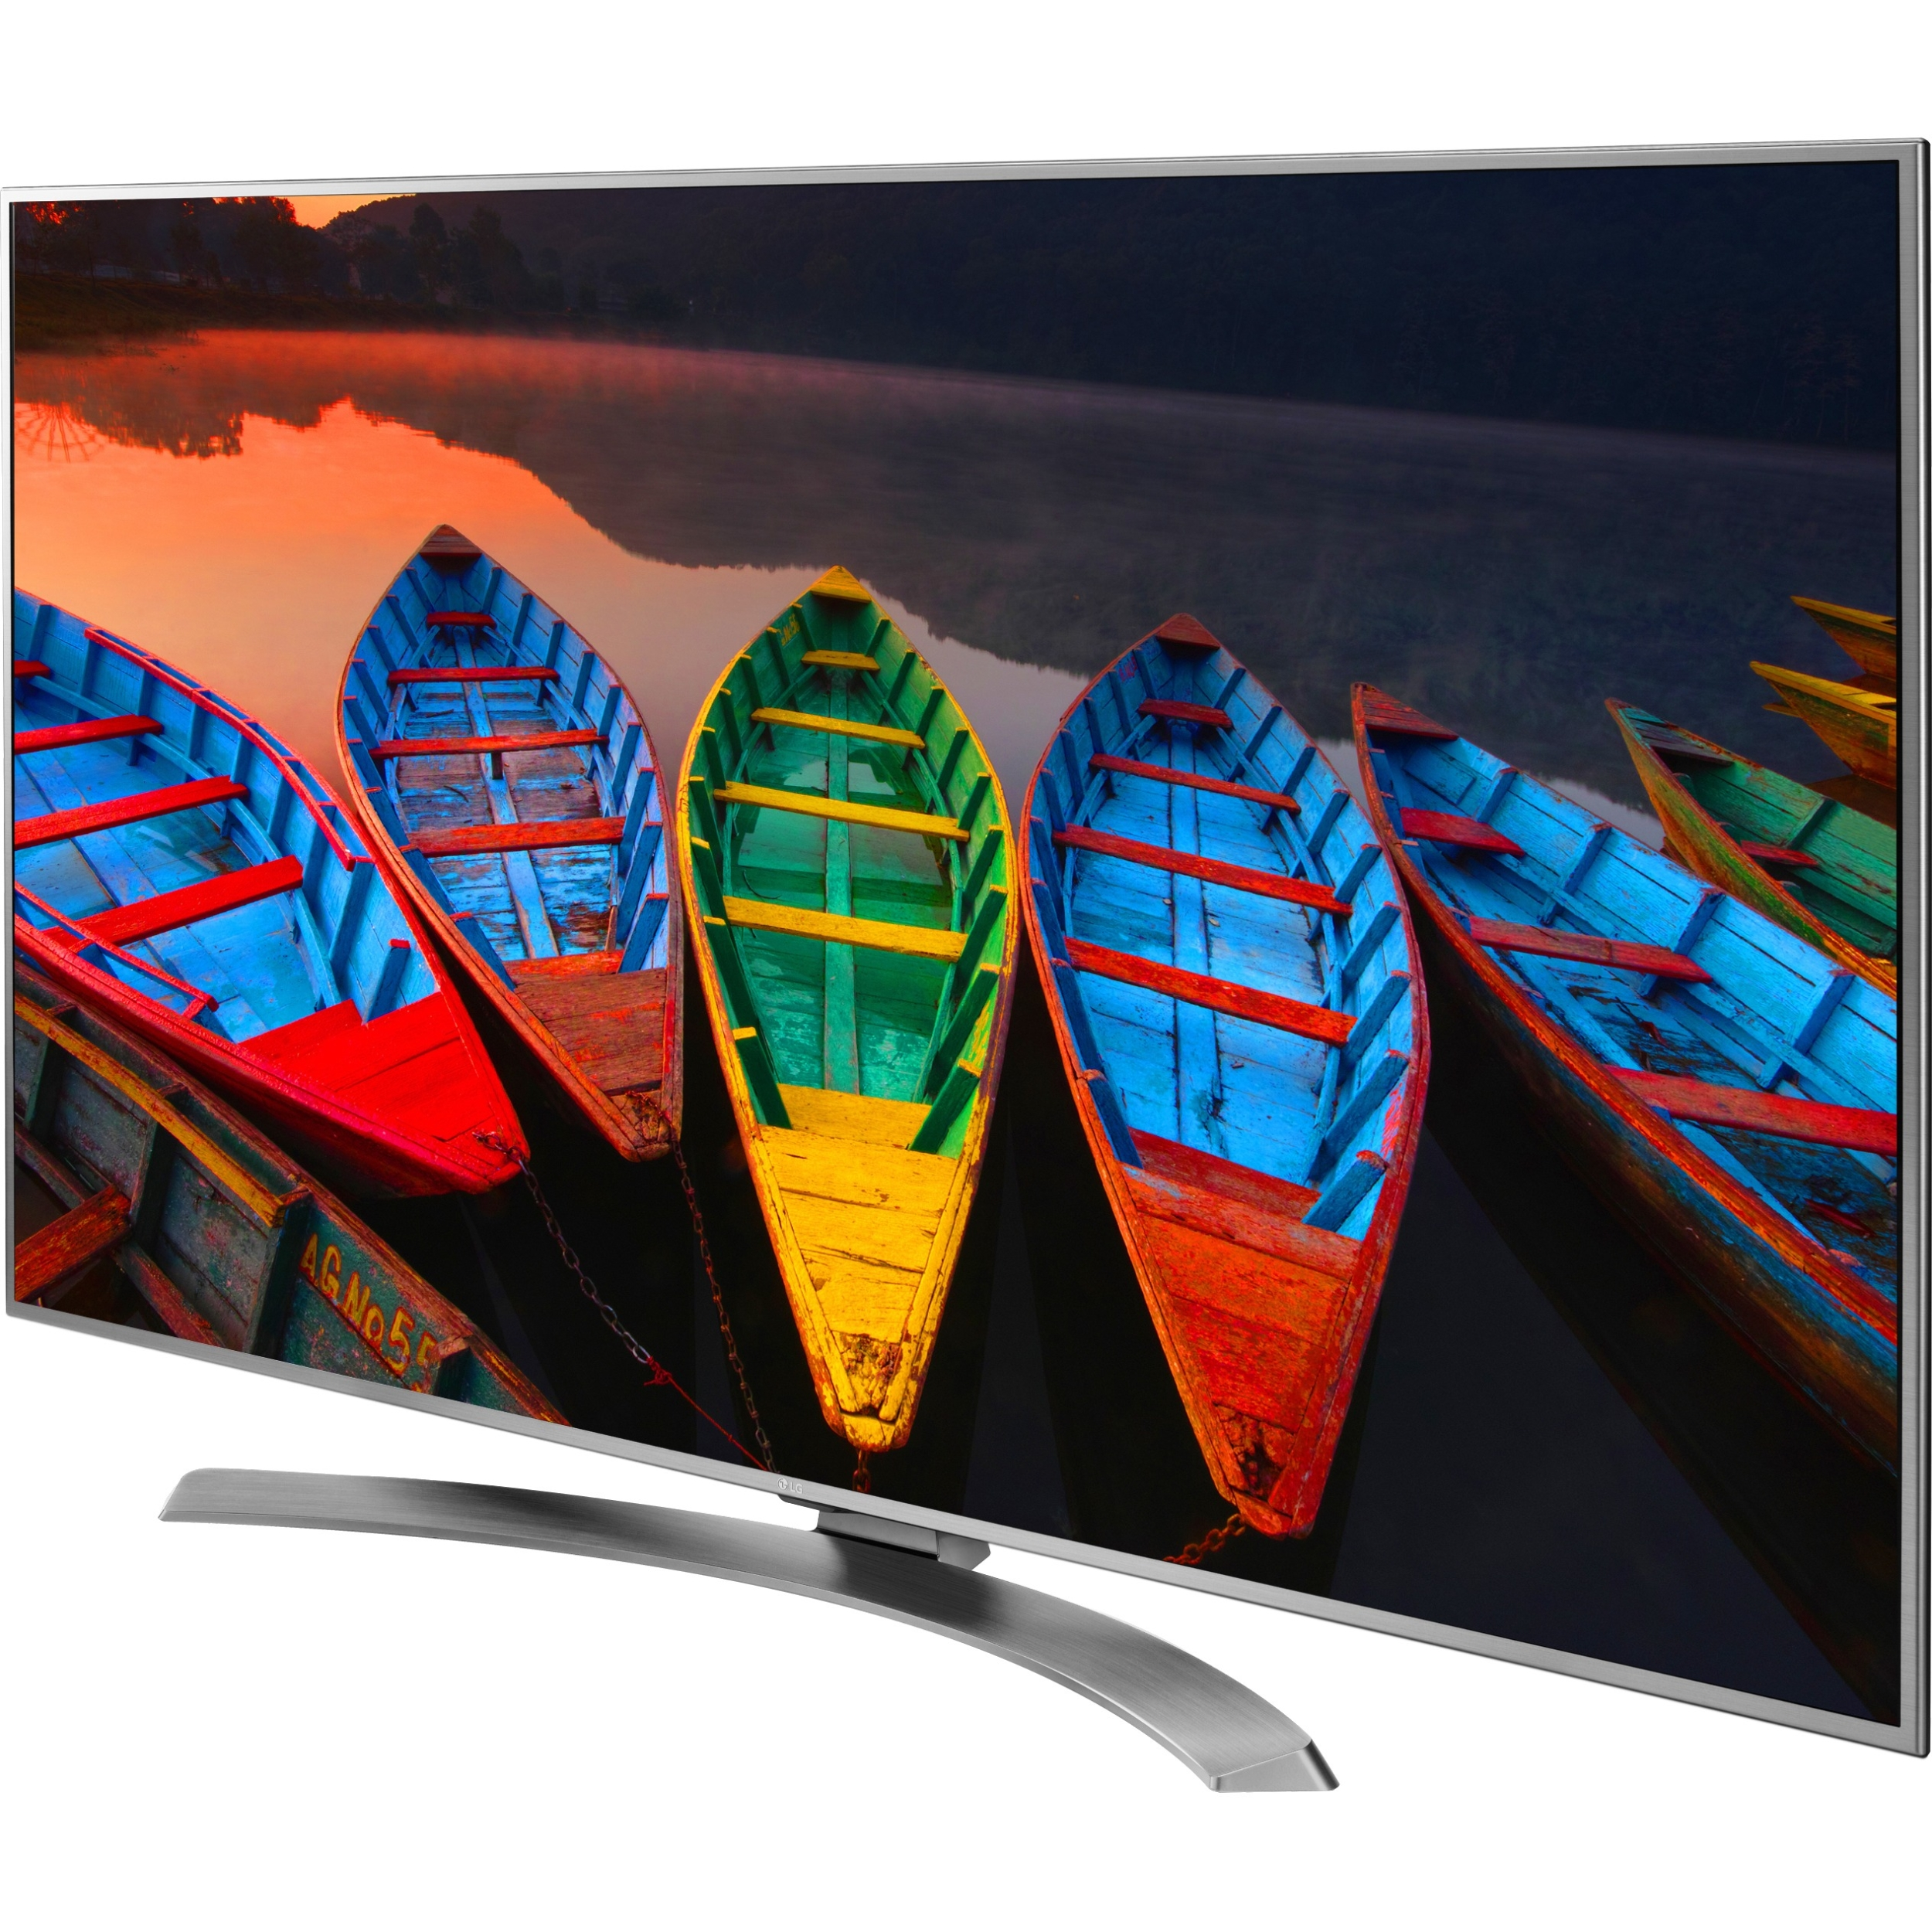 LG 60UH7700 60-inch 4K Ultra HD LED Smart TV - 3840 x 2160 - (